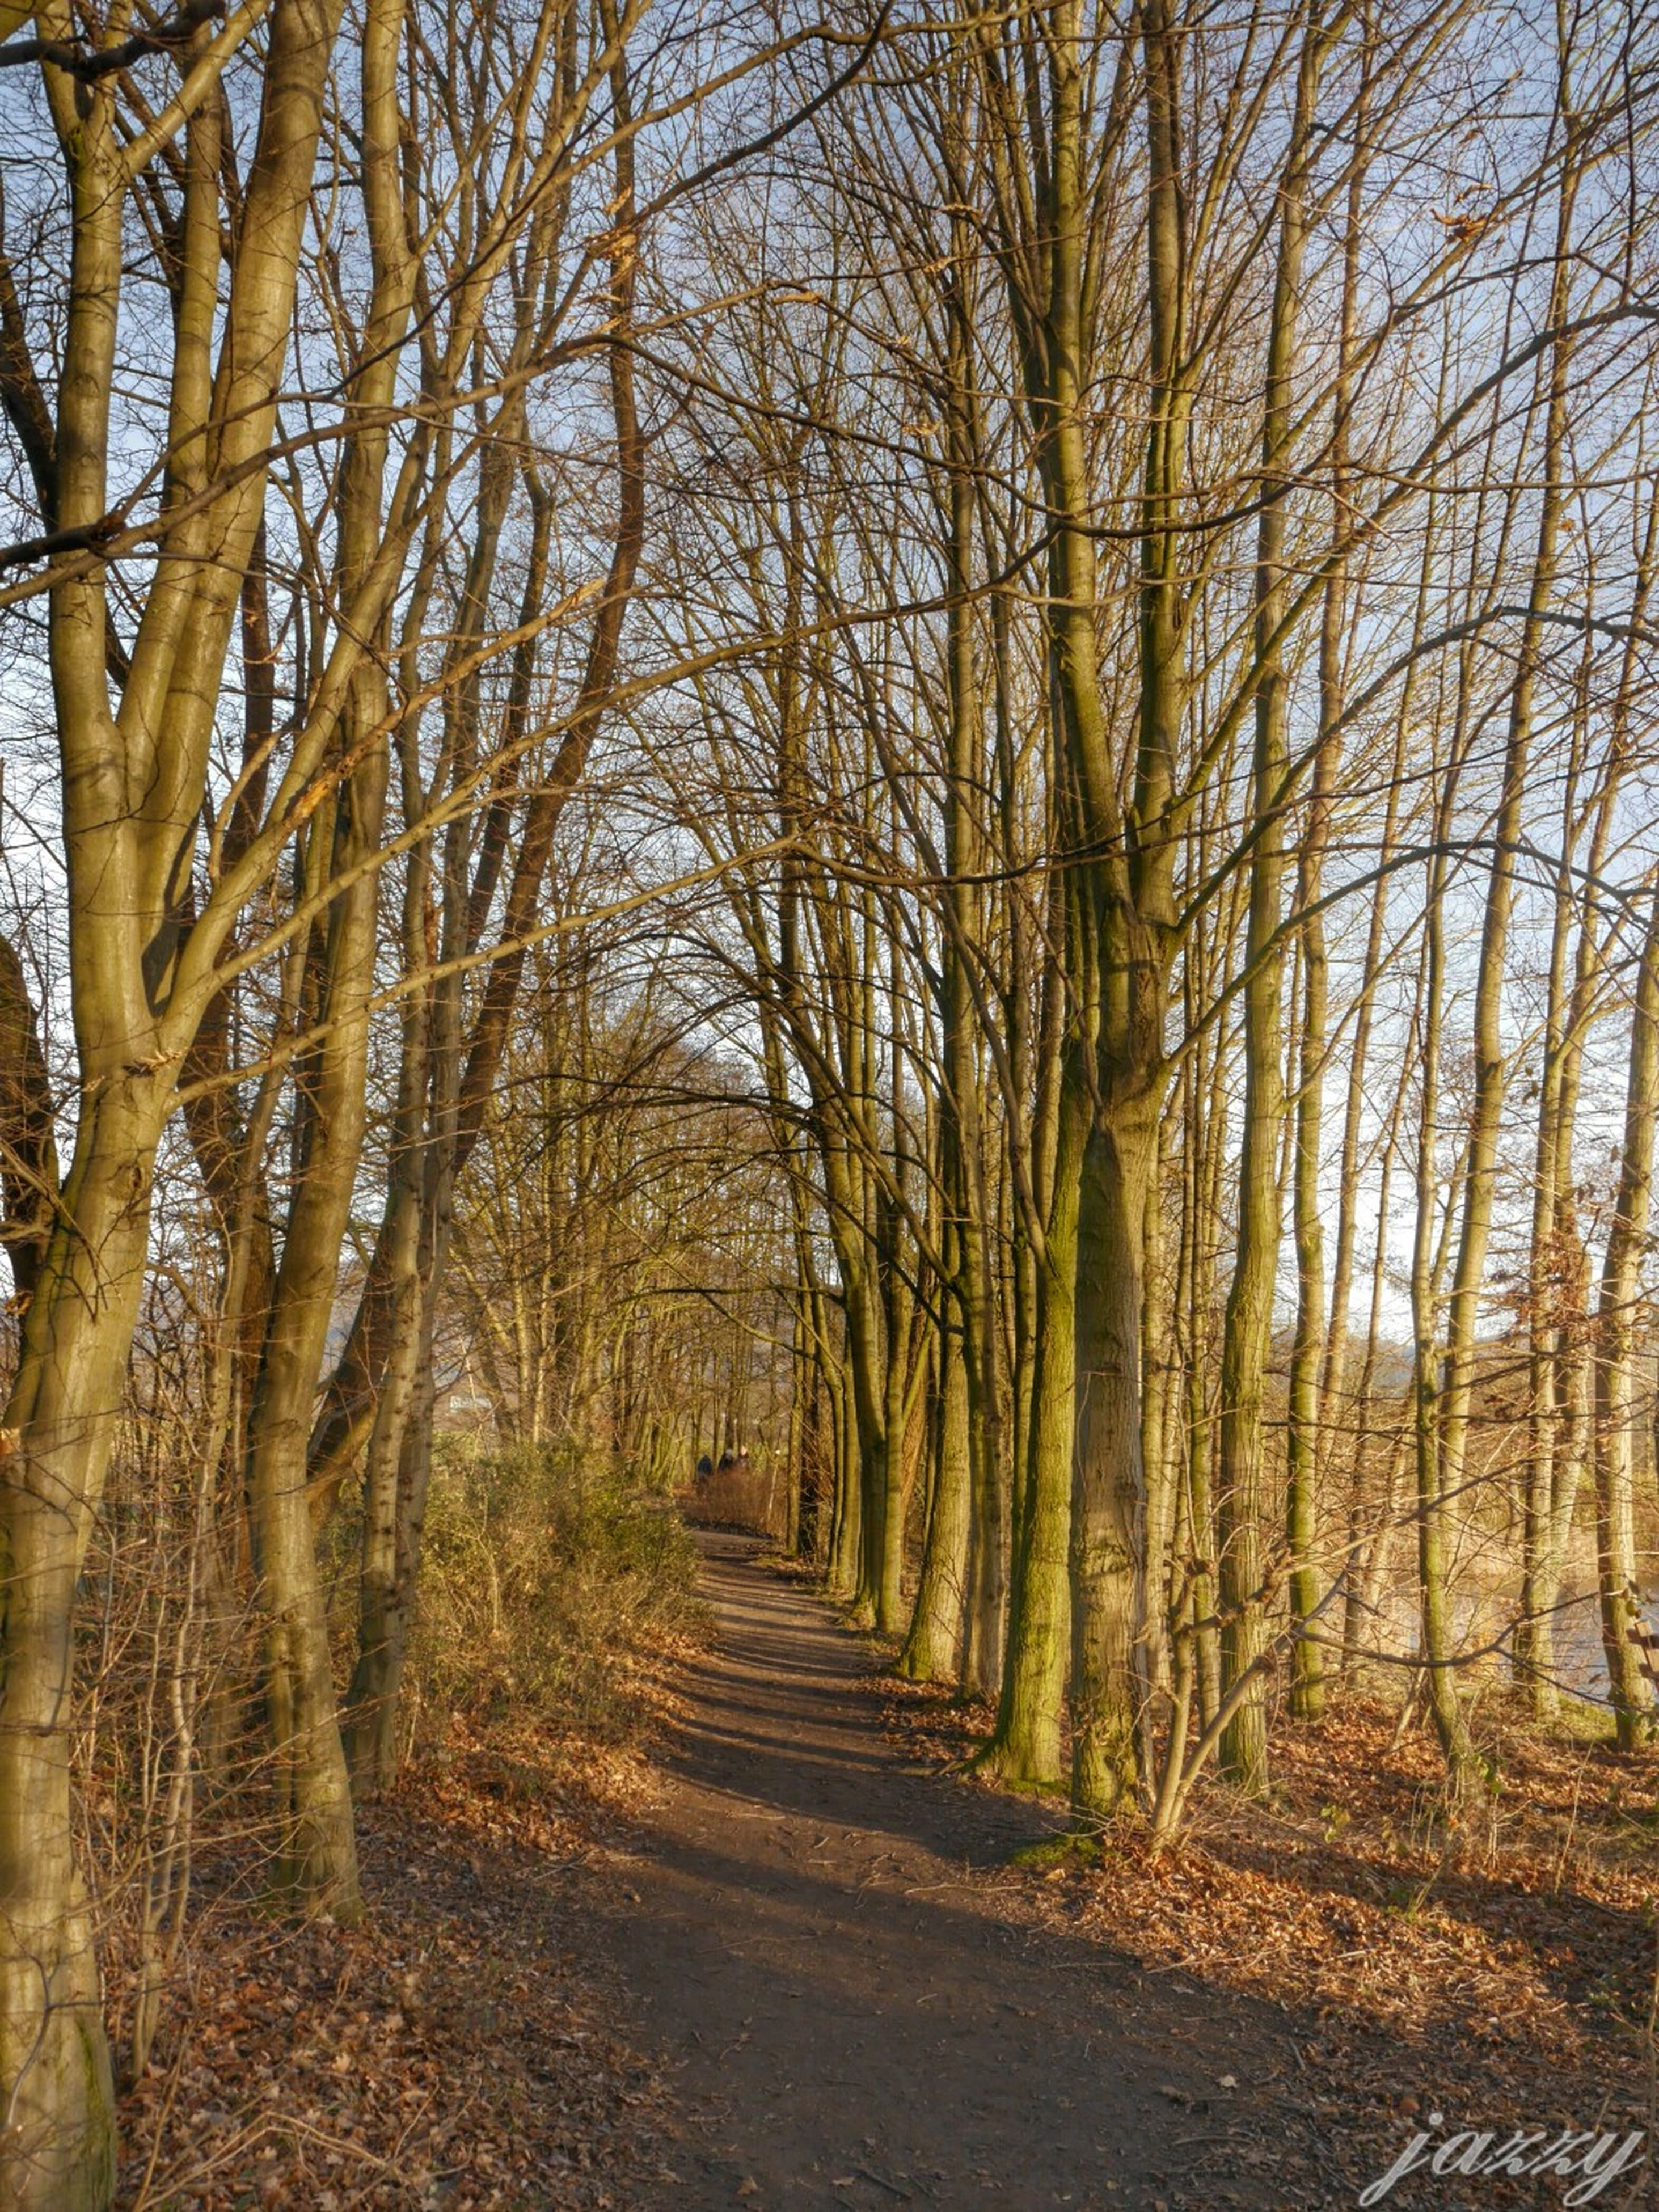 tree, the way forward, tranquility, diminishing perspective, tree trunk, tranquil scene, forest, nature, vanishing point, growth, woodland, treelined, beauty in nature, bare tree, branch, scenics, dirt road, landscape, footpath, non-urban scene